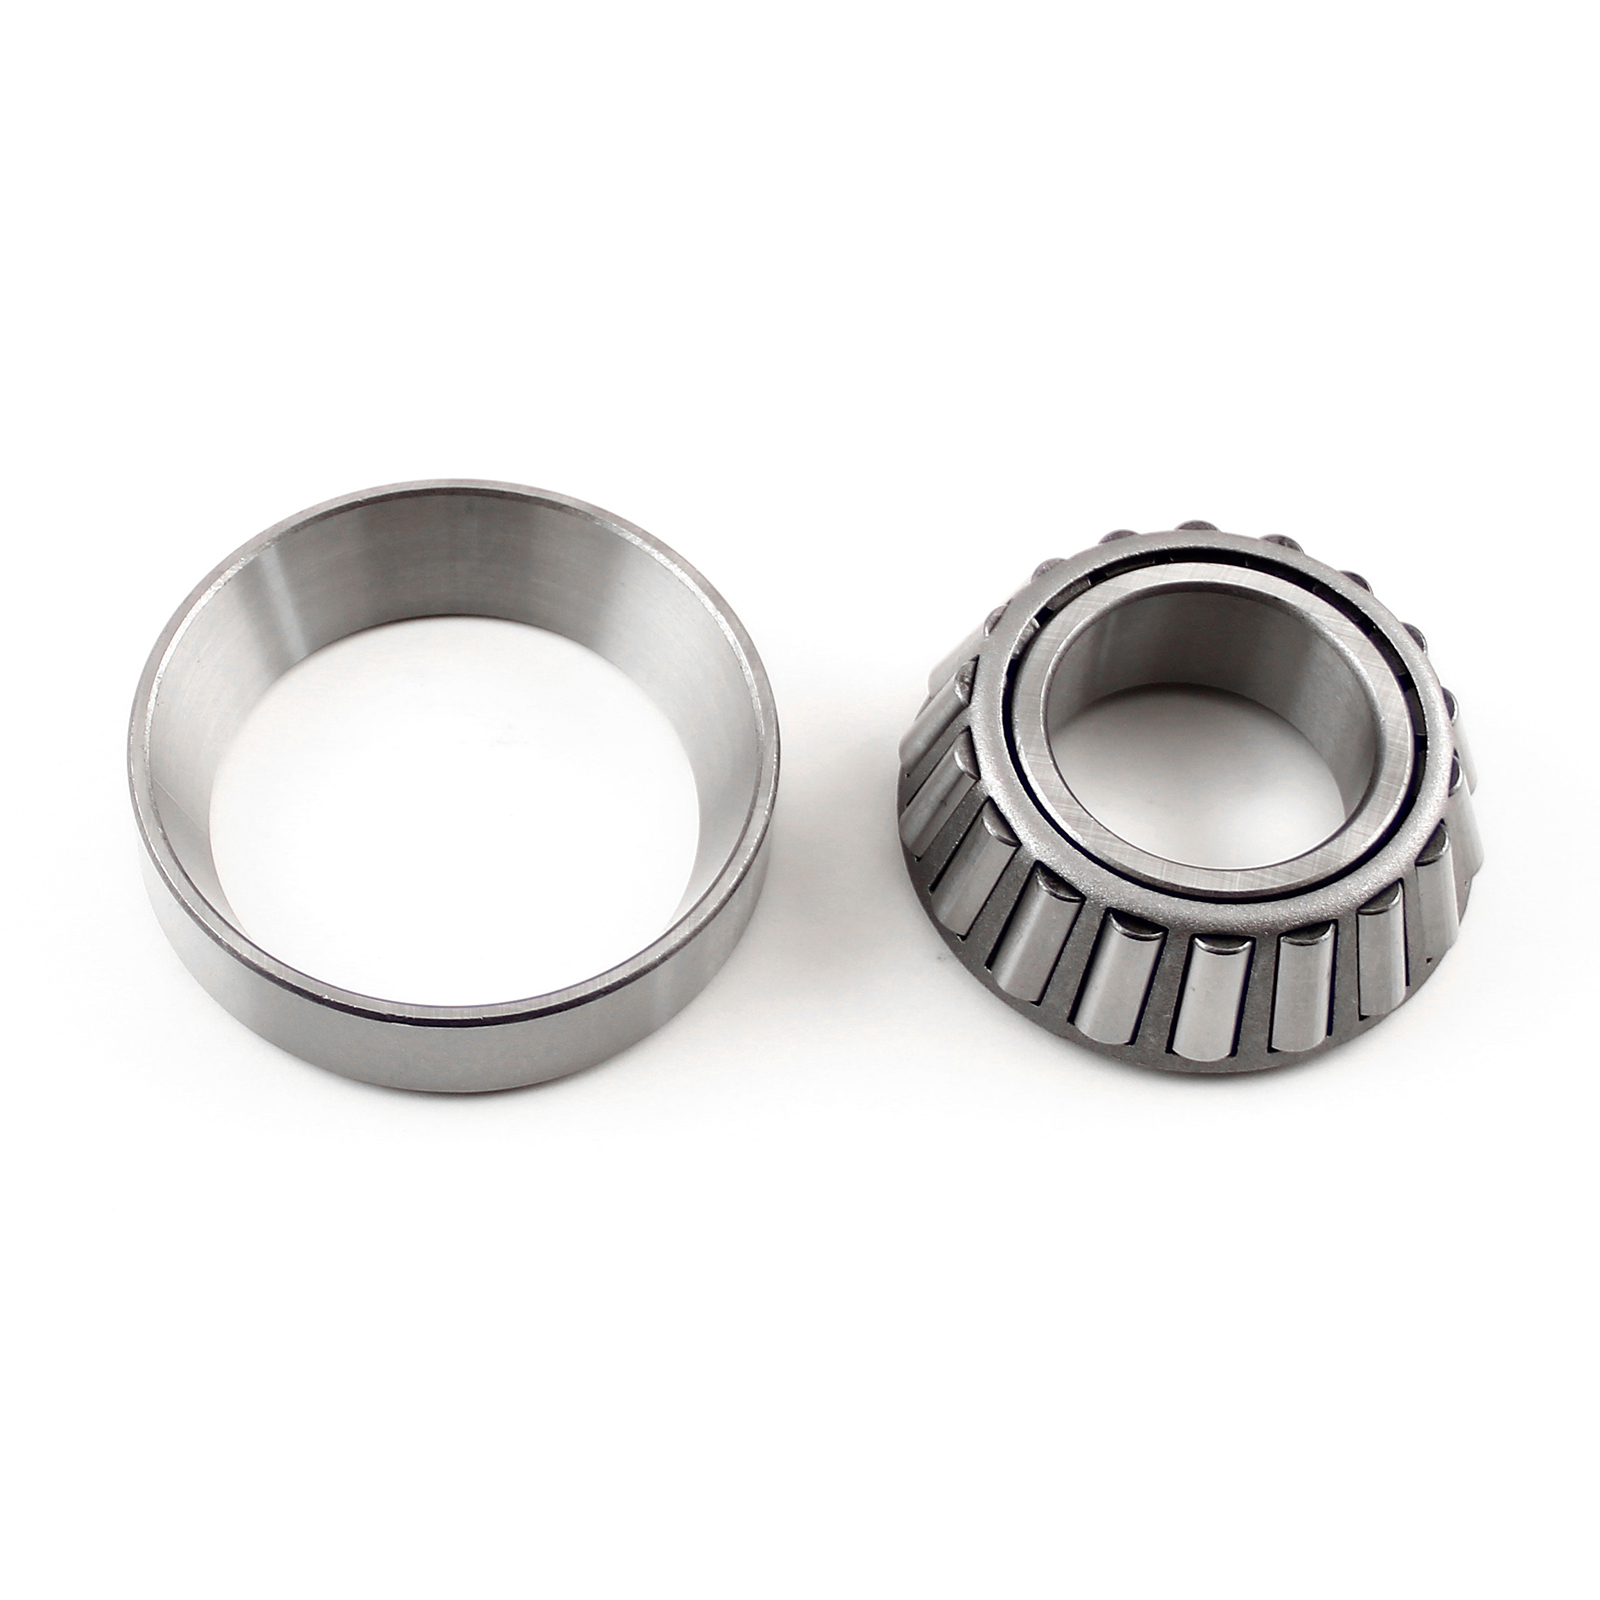 Pinion Bearing Industry Std Ref: 2788 / 2729